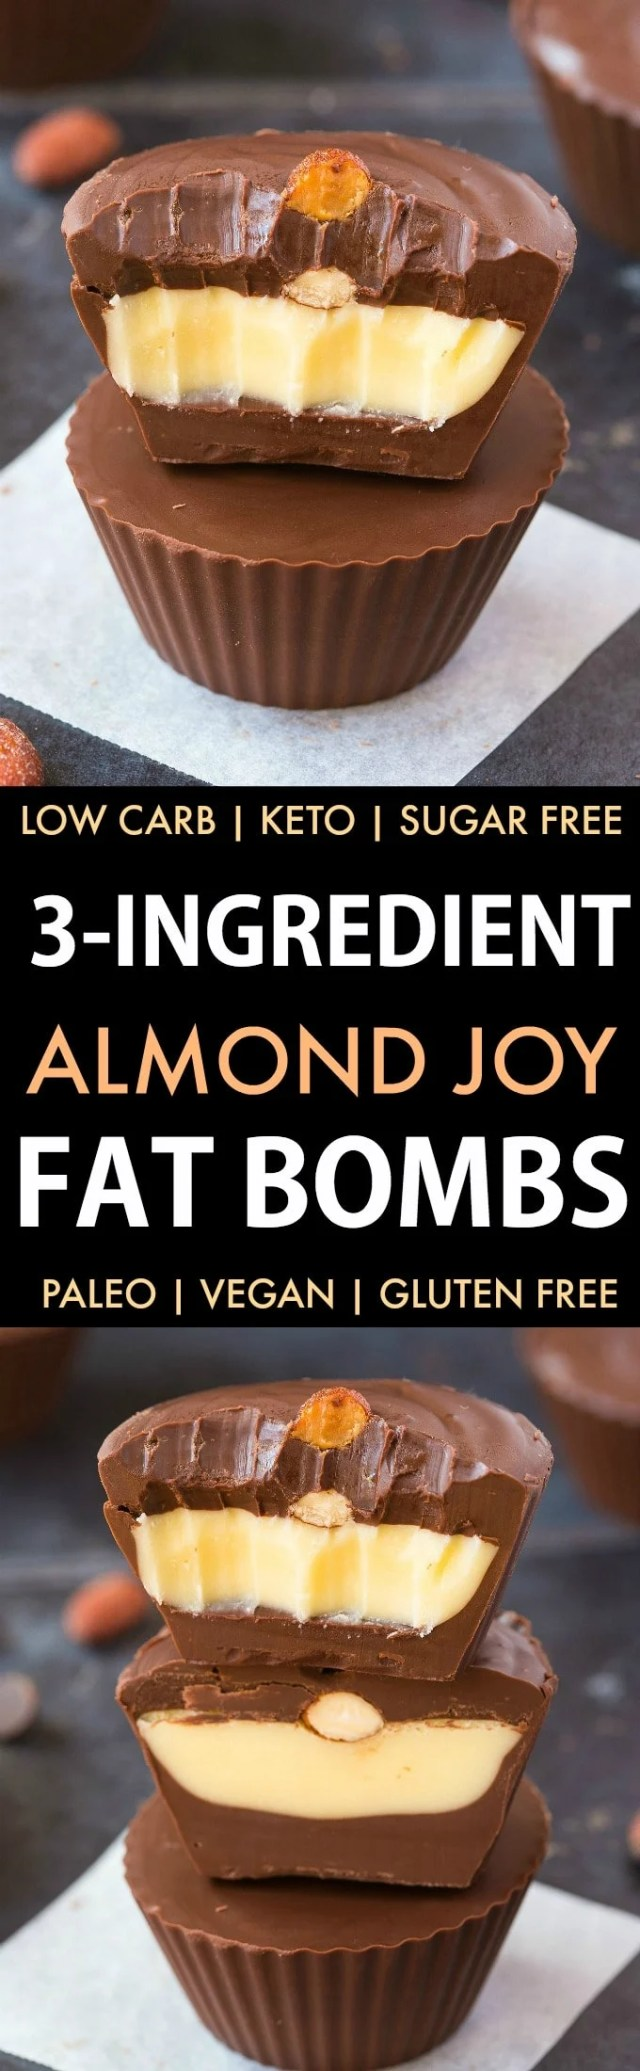 3-Ingredient Almond Joy Fat Bombs in a collage